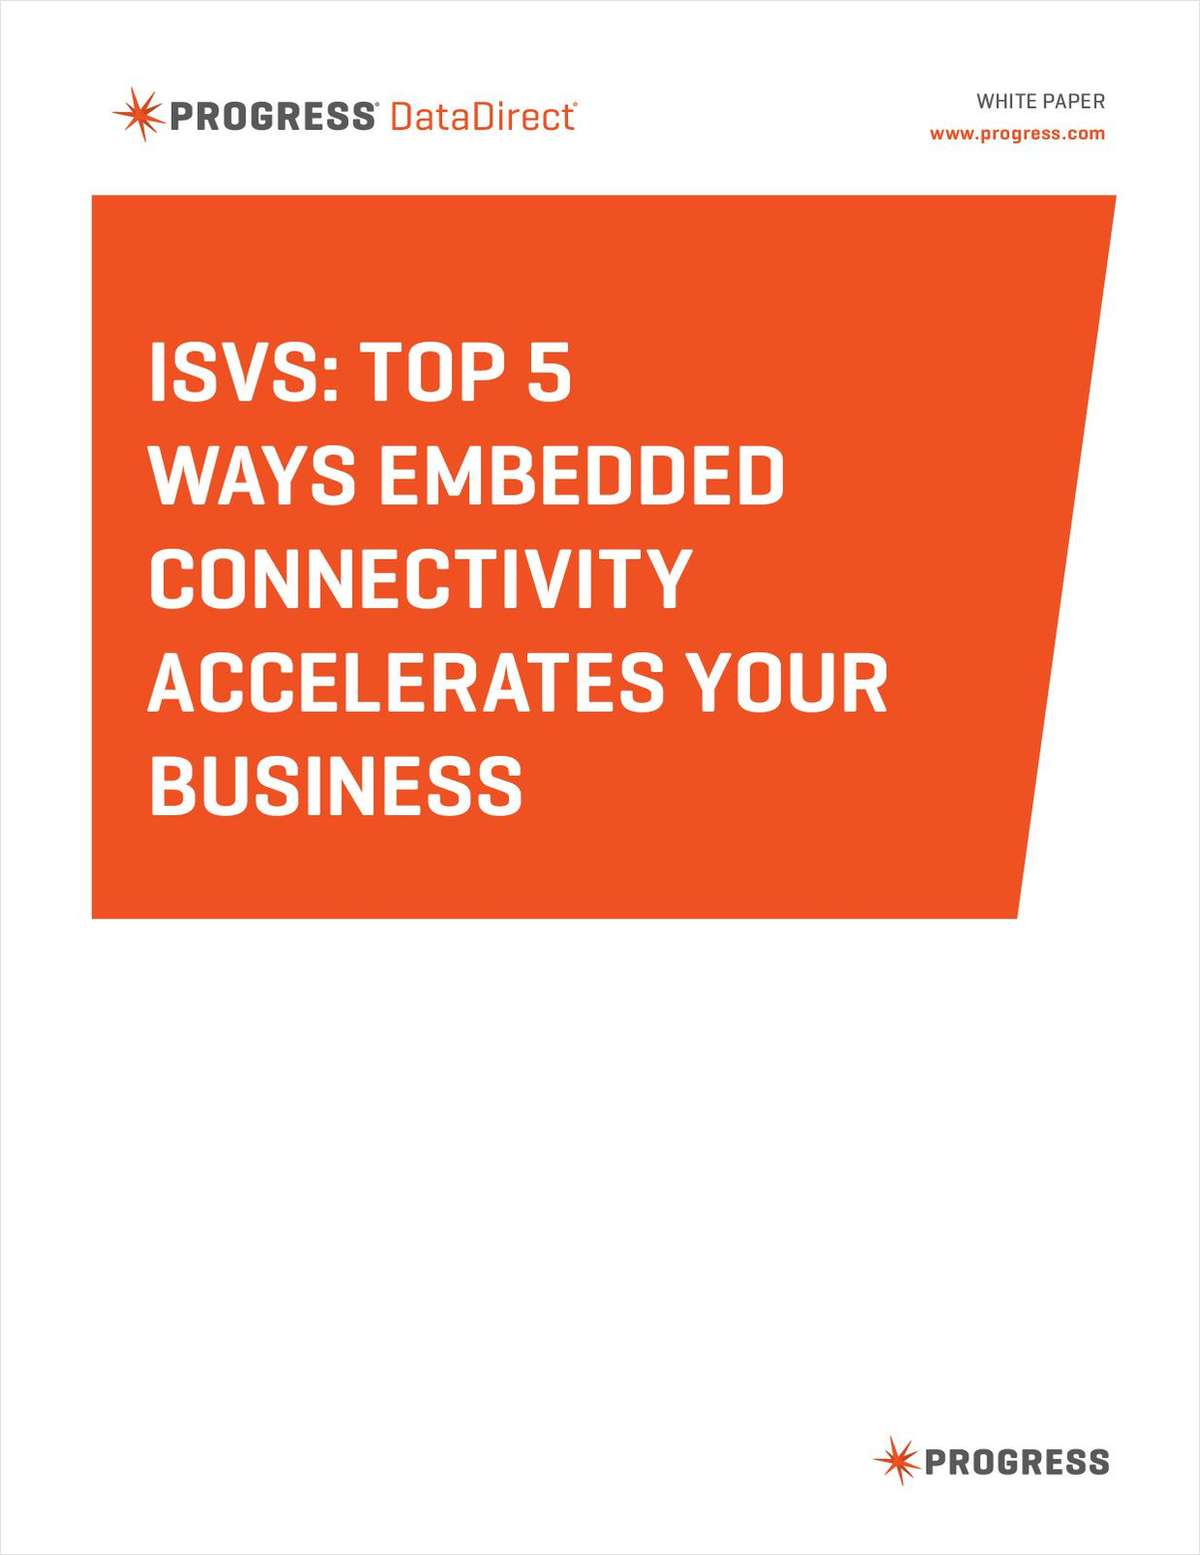 ISVs: Top 5 Ways Embedded Connectivity Accelerates Your Business